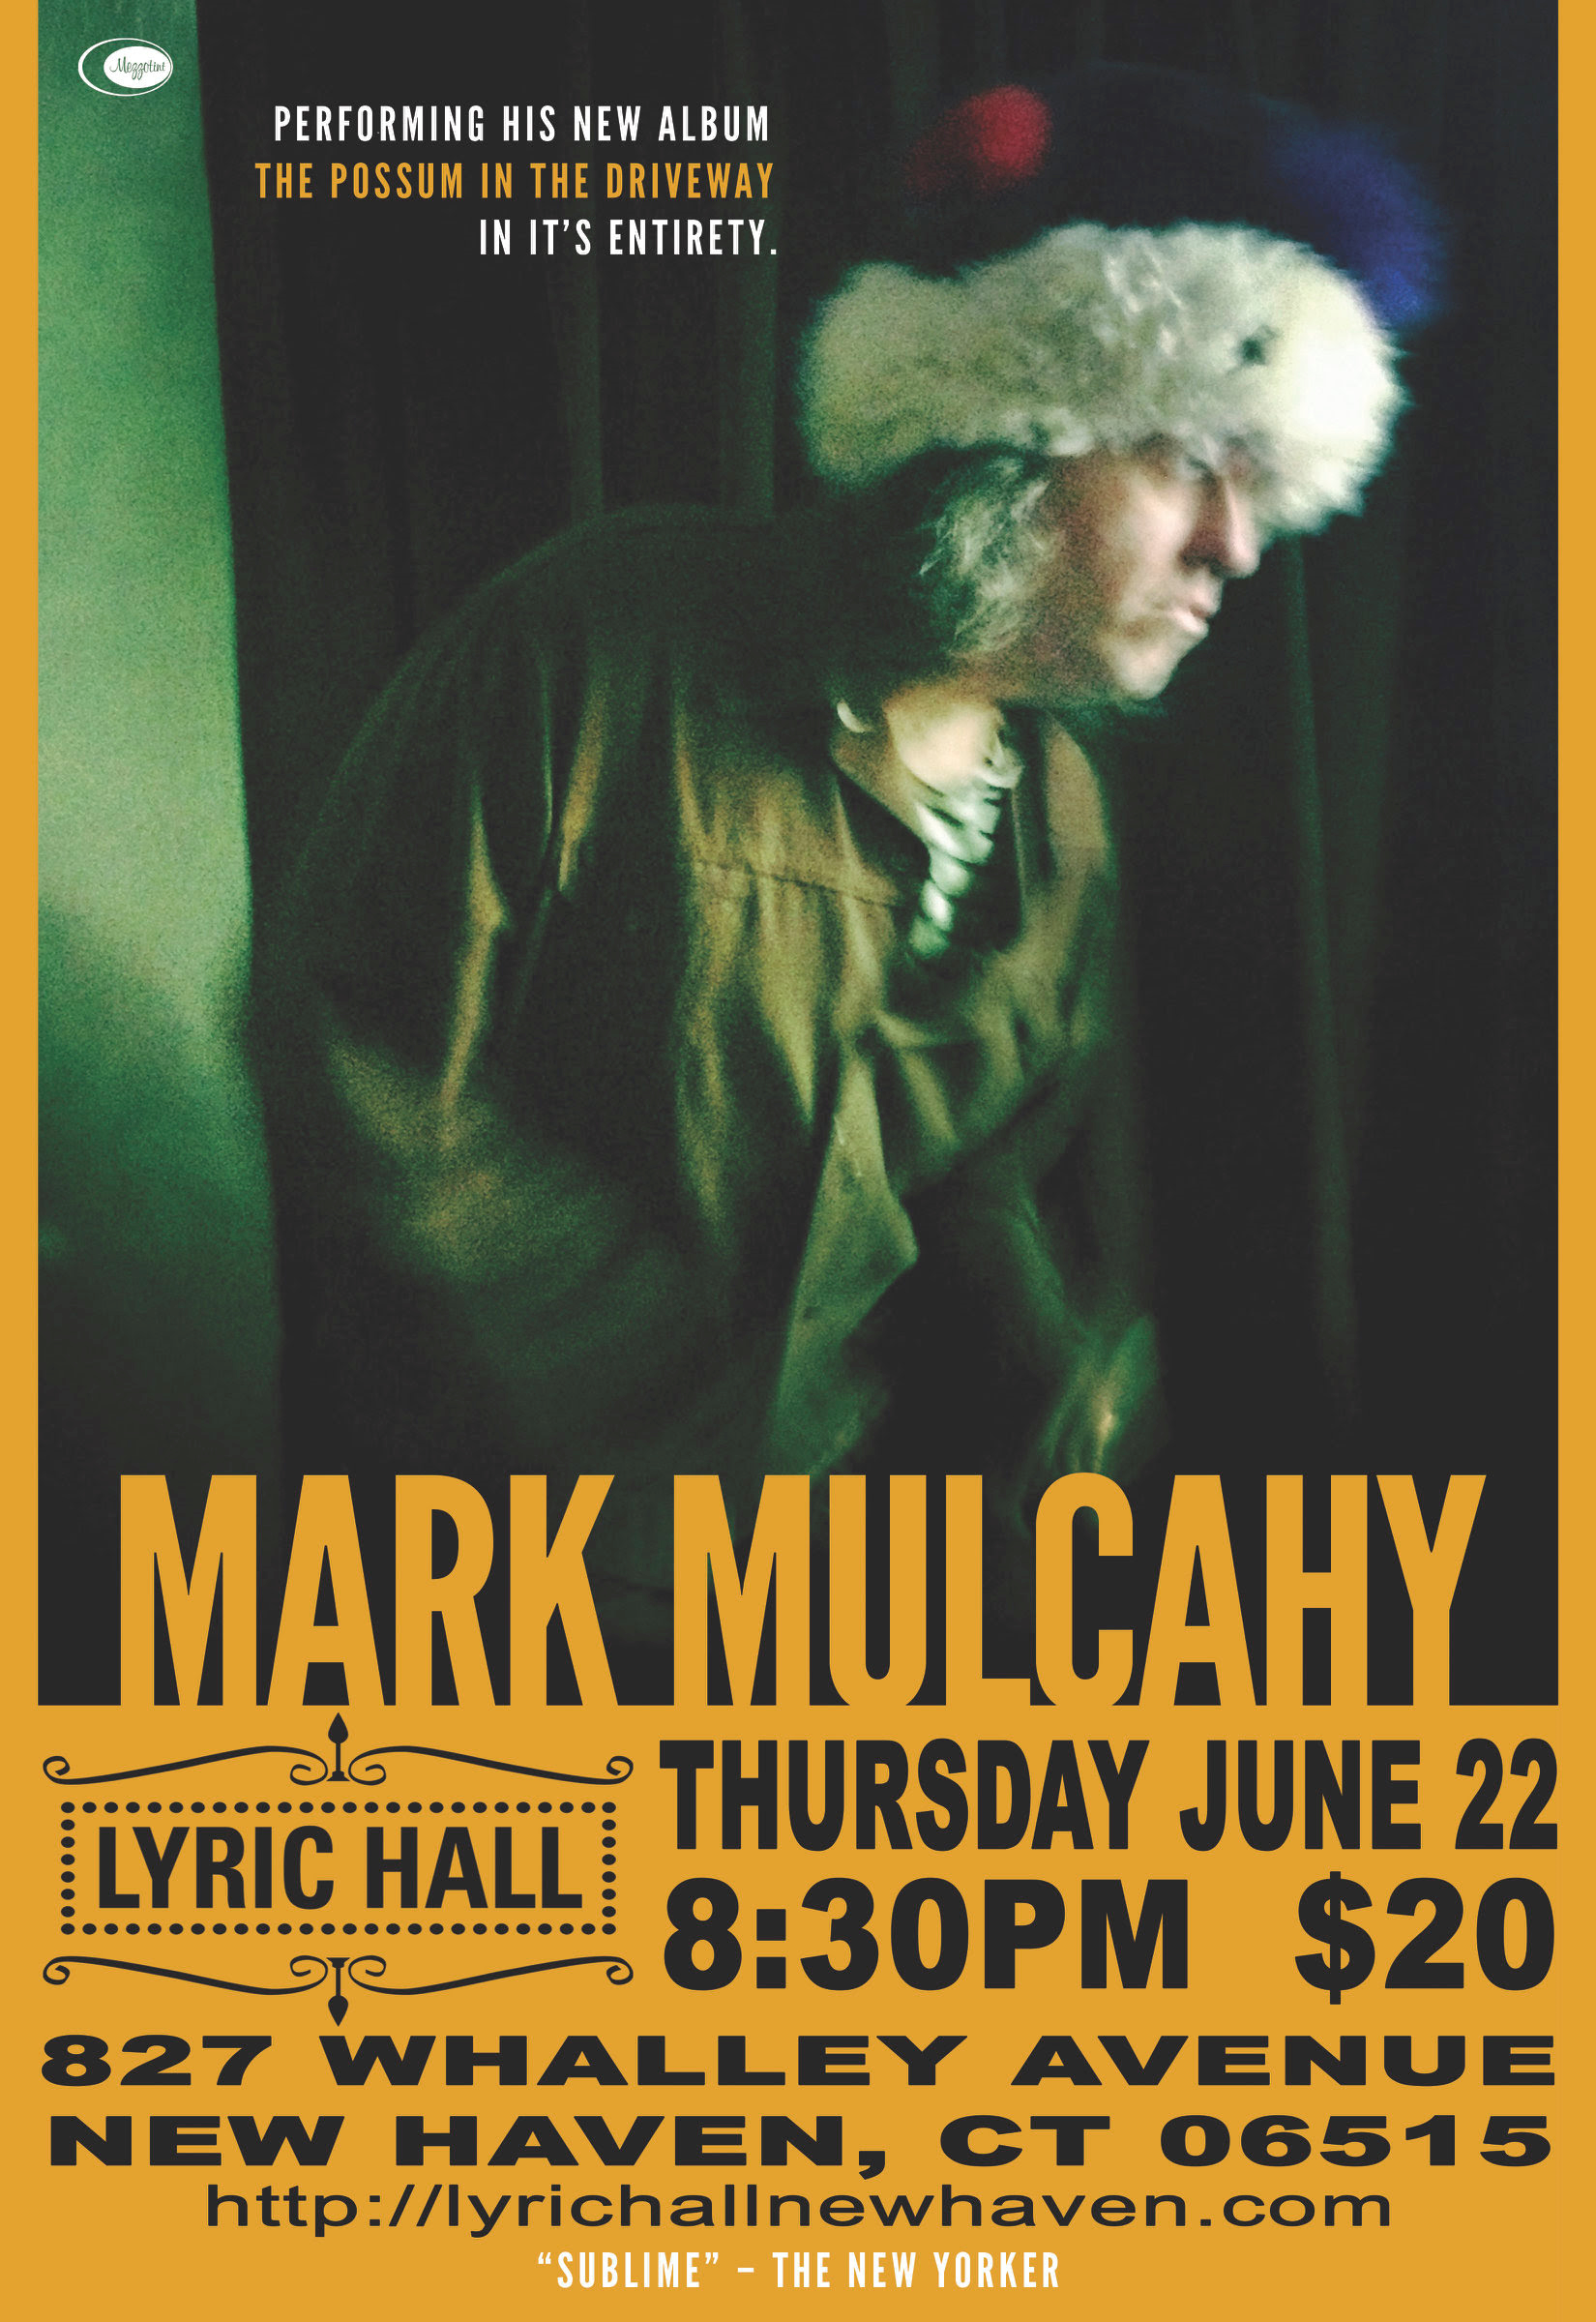 Mark Mulcahy Live At Live Hall